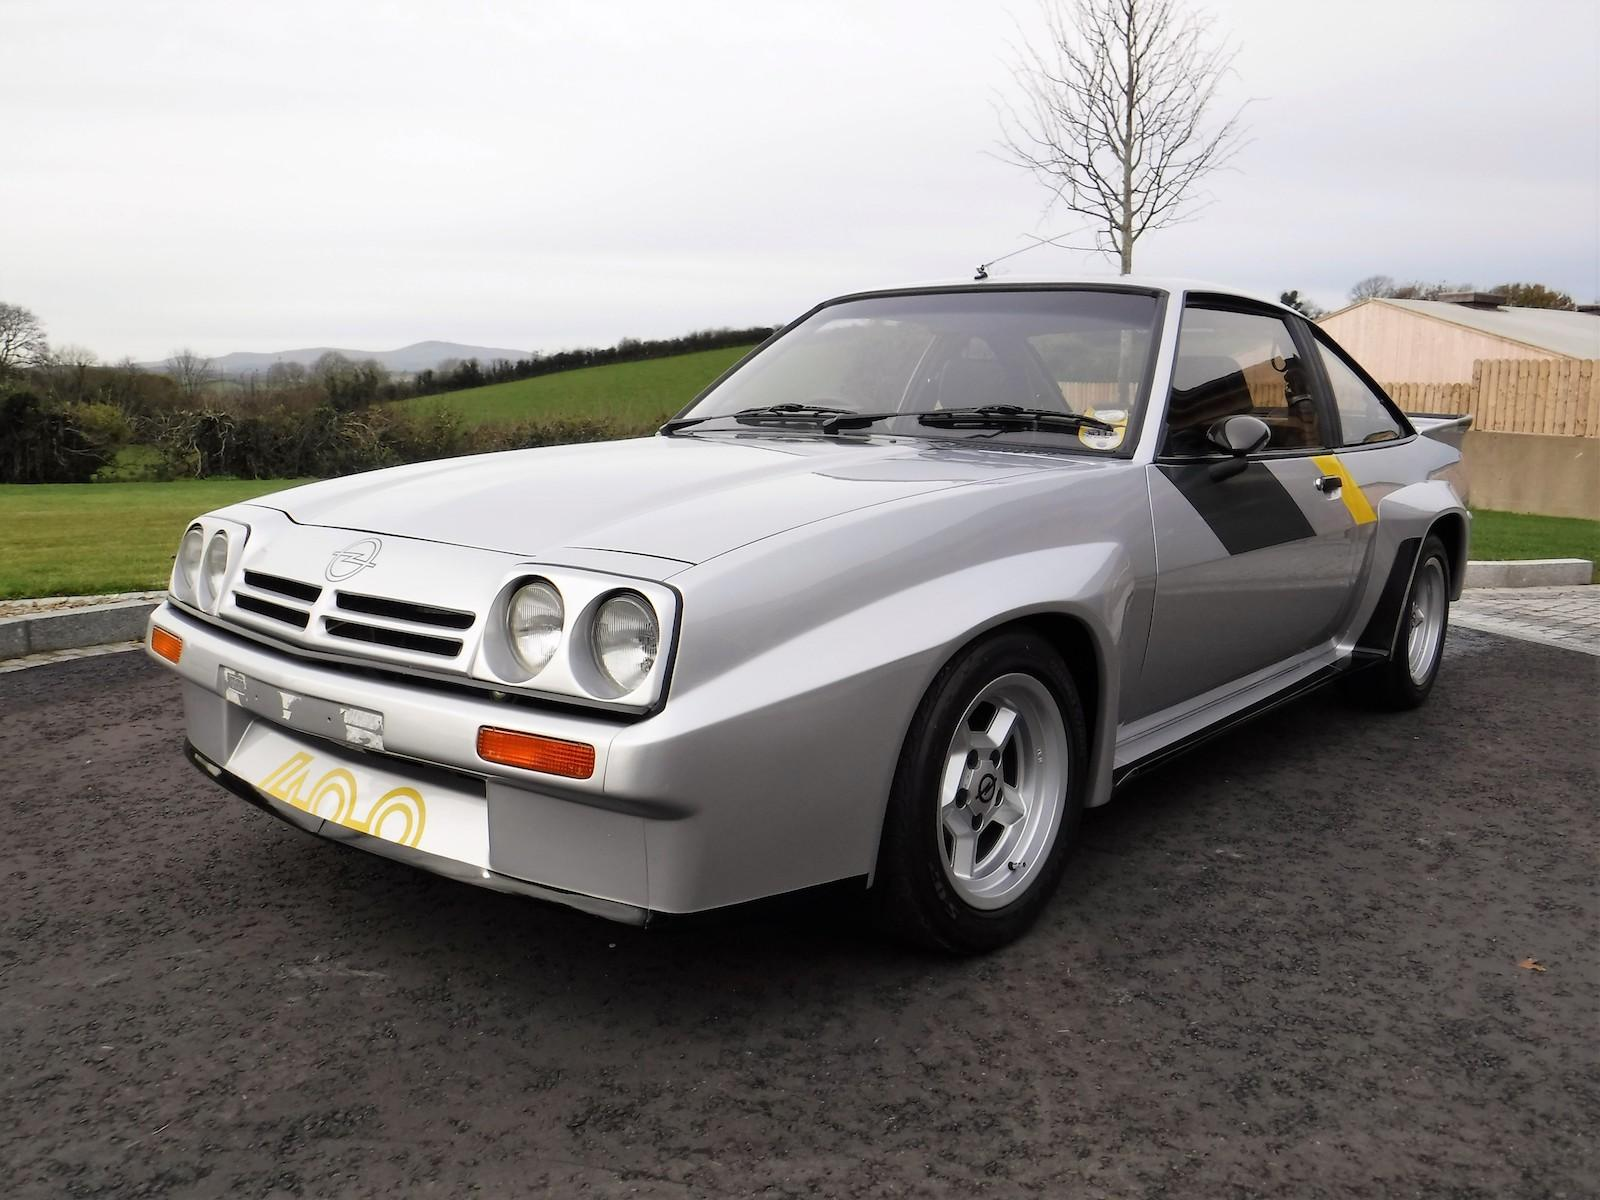 Rare Opel Manta 400 up for auction